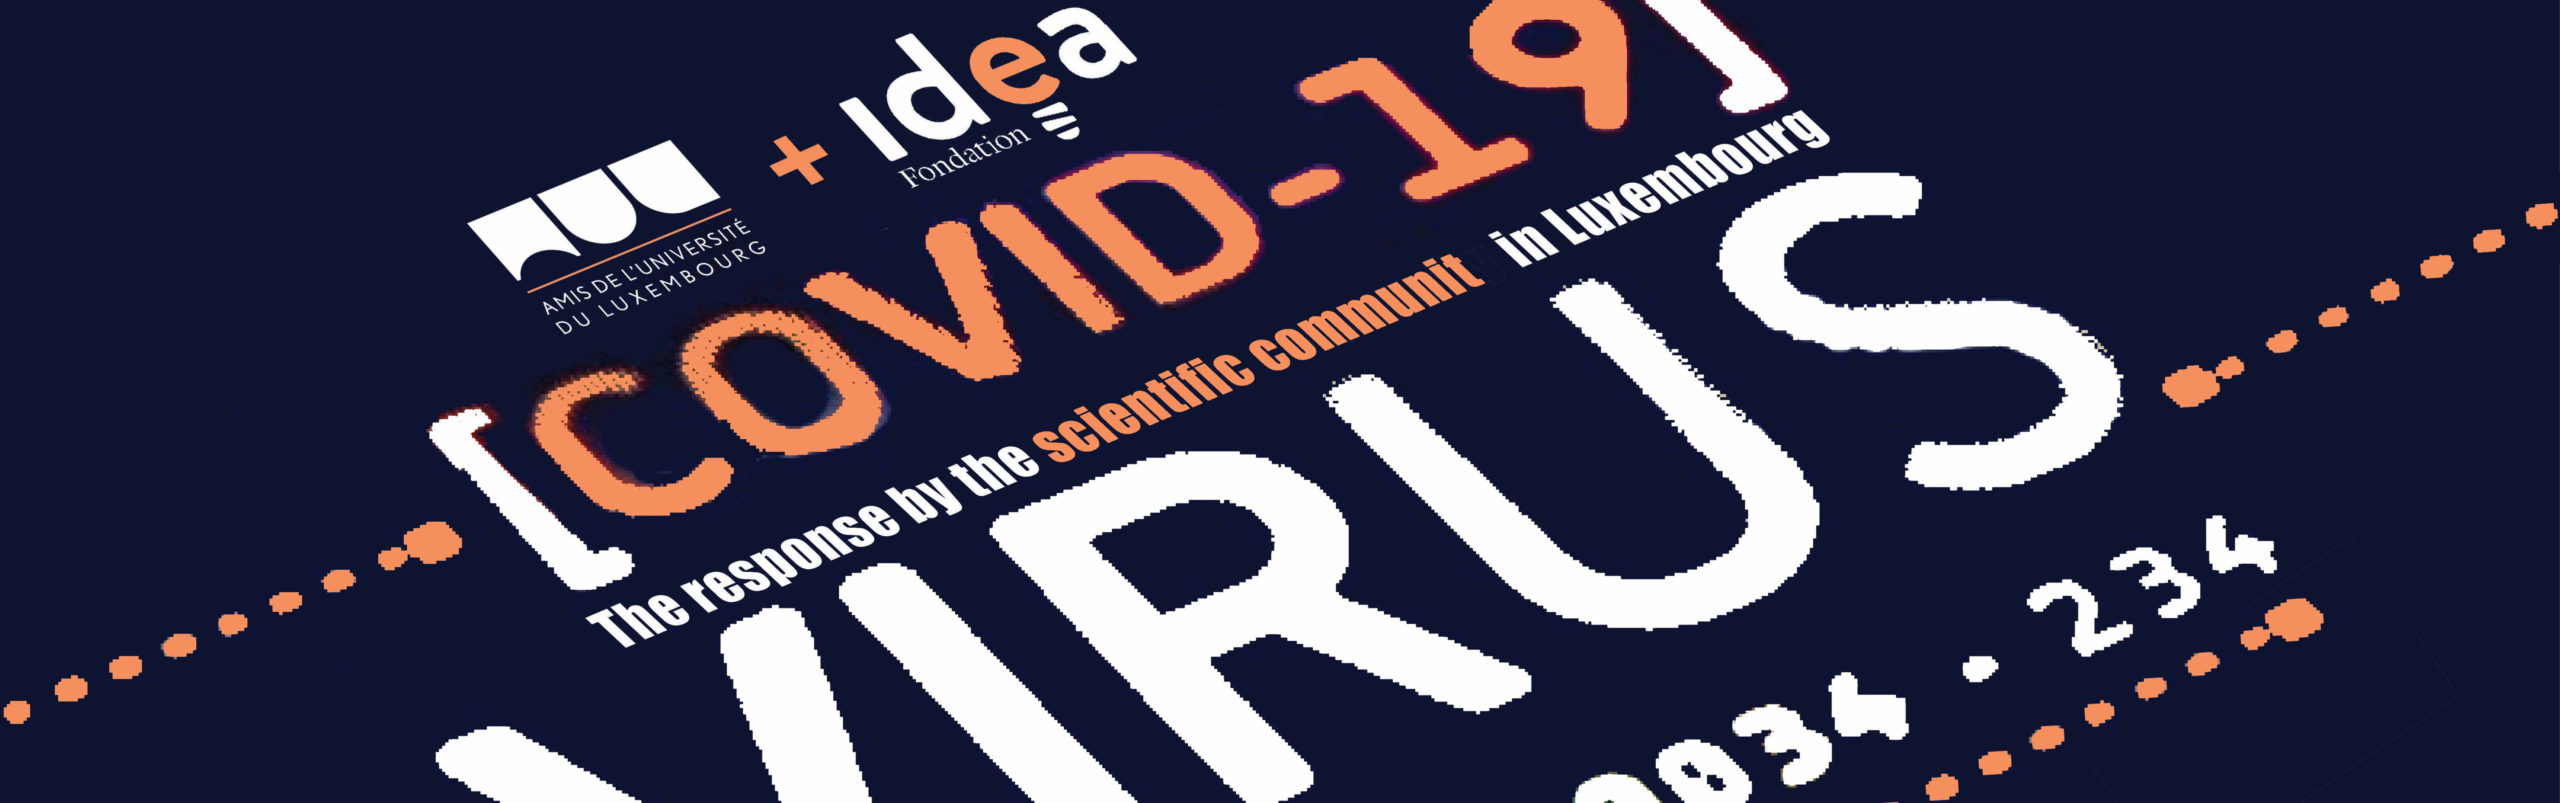 banner_AUL_IDEA_02-scaled